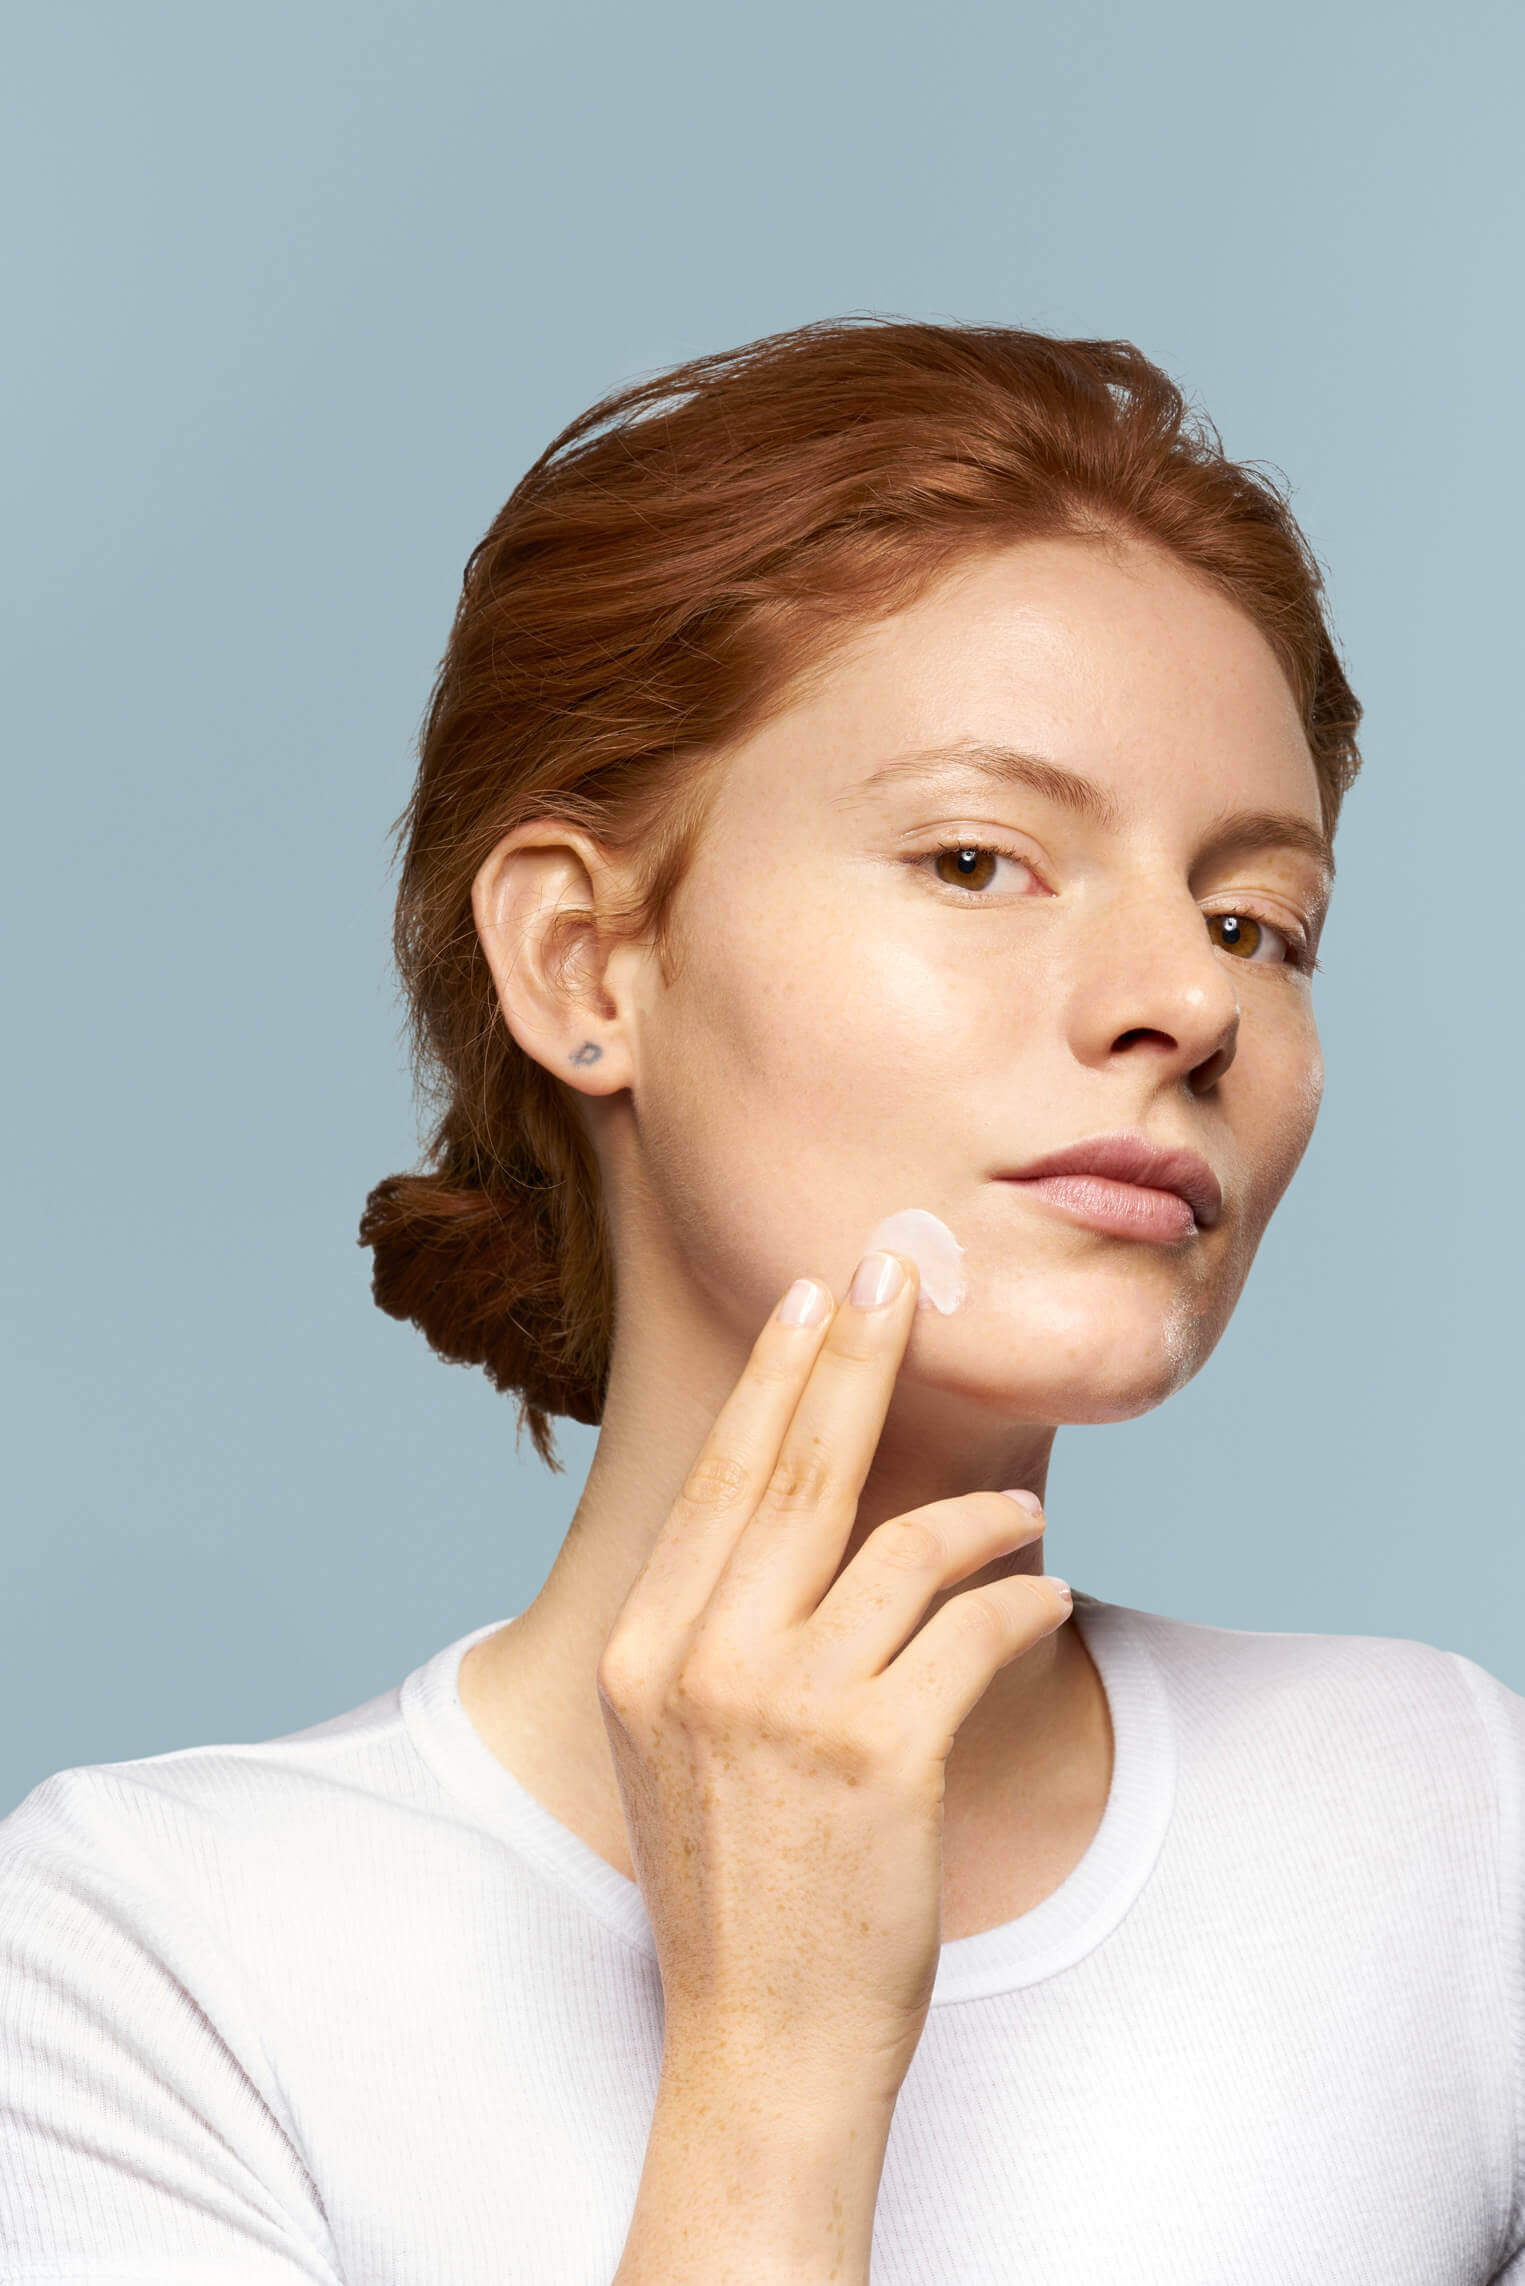 Niacinamide 101: What it is and What it's Used For